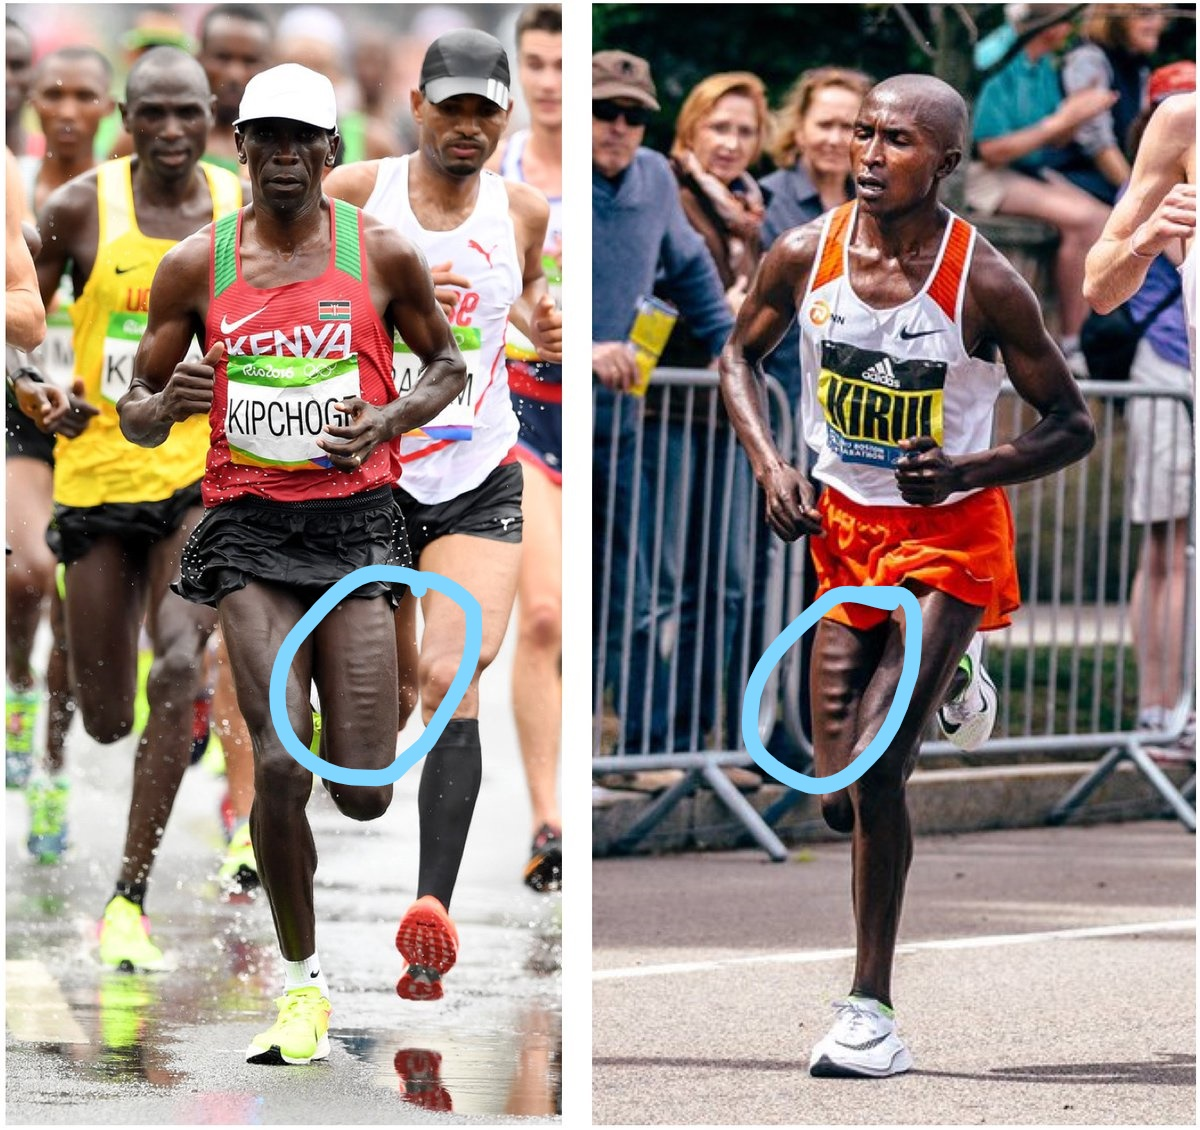 Morphological and biomechanical traits of world class distance runners